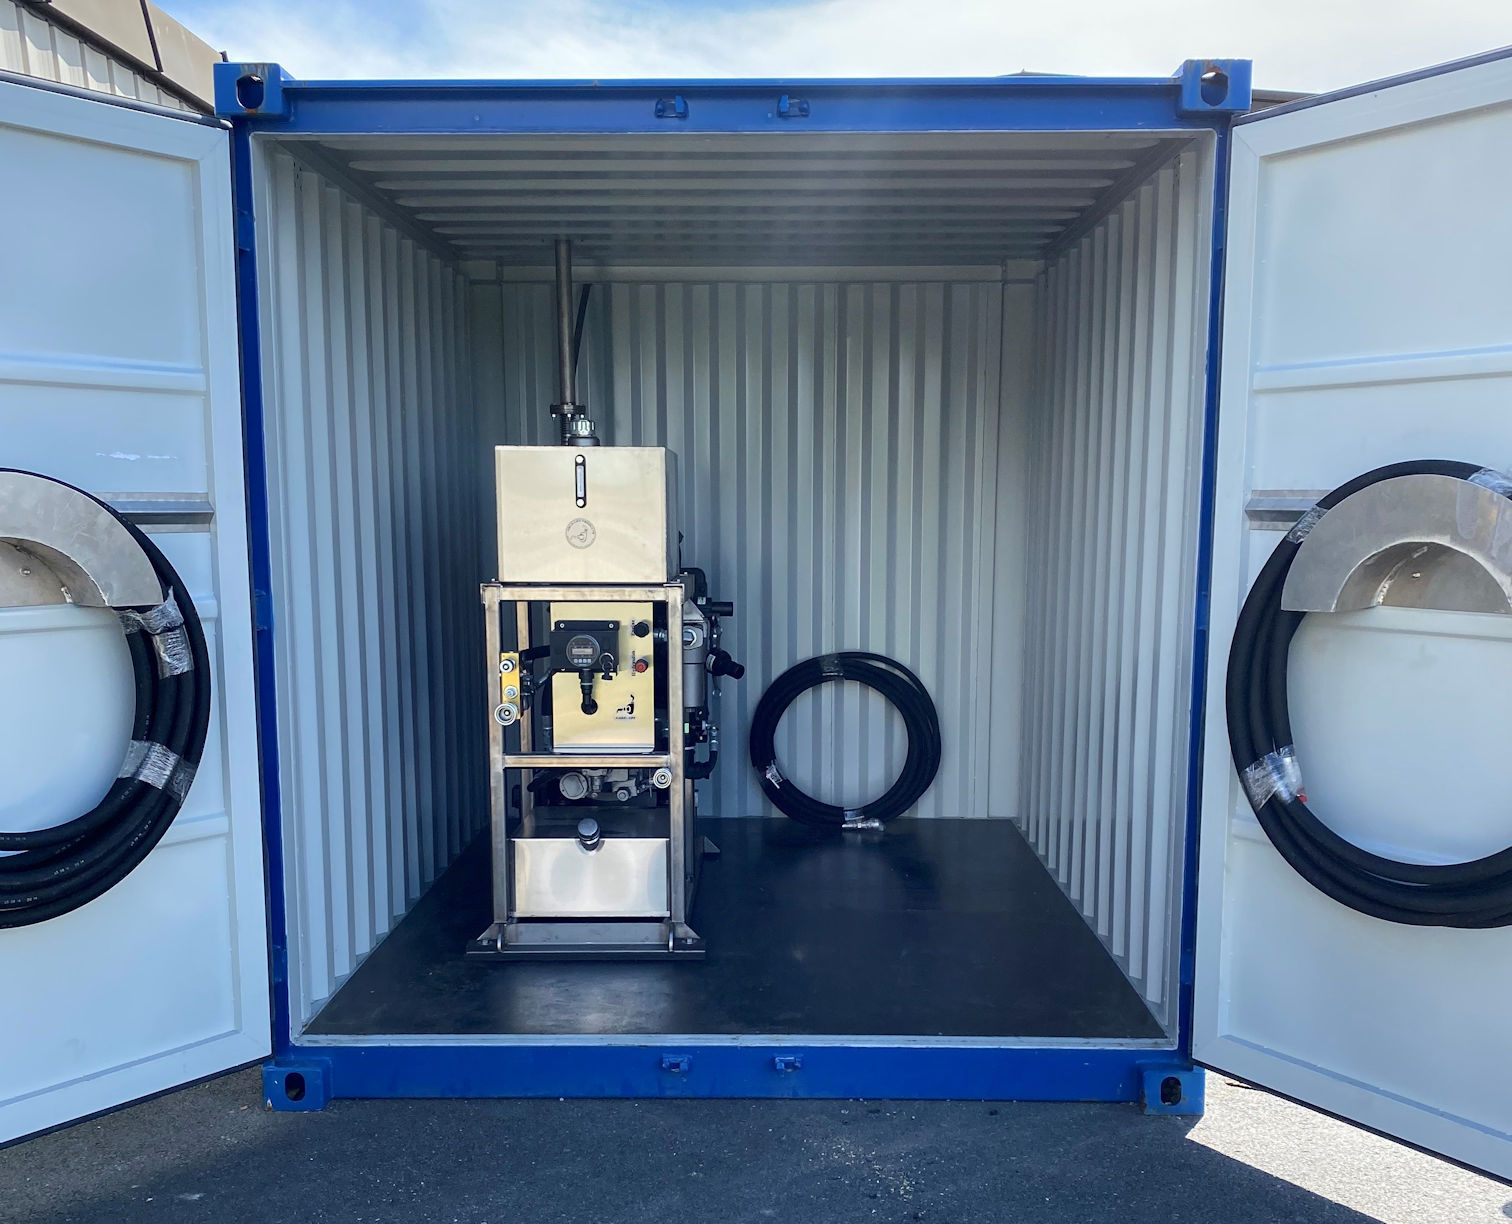 Hydraulikkaggregat i container